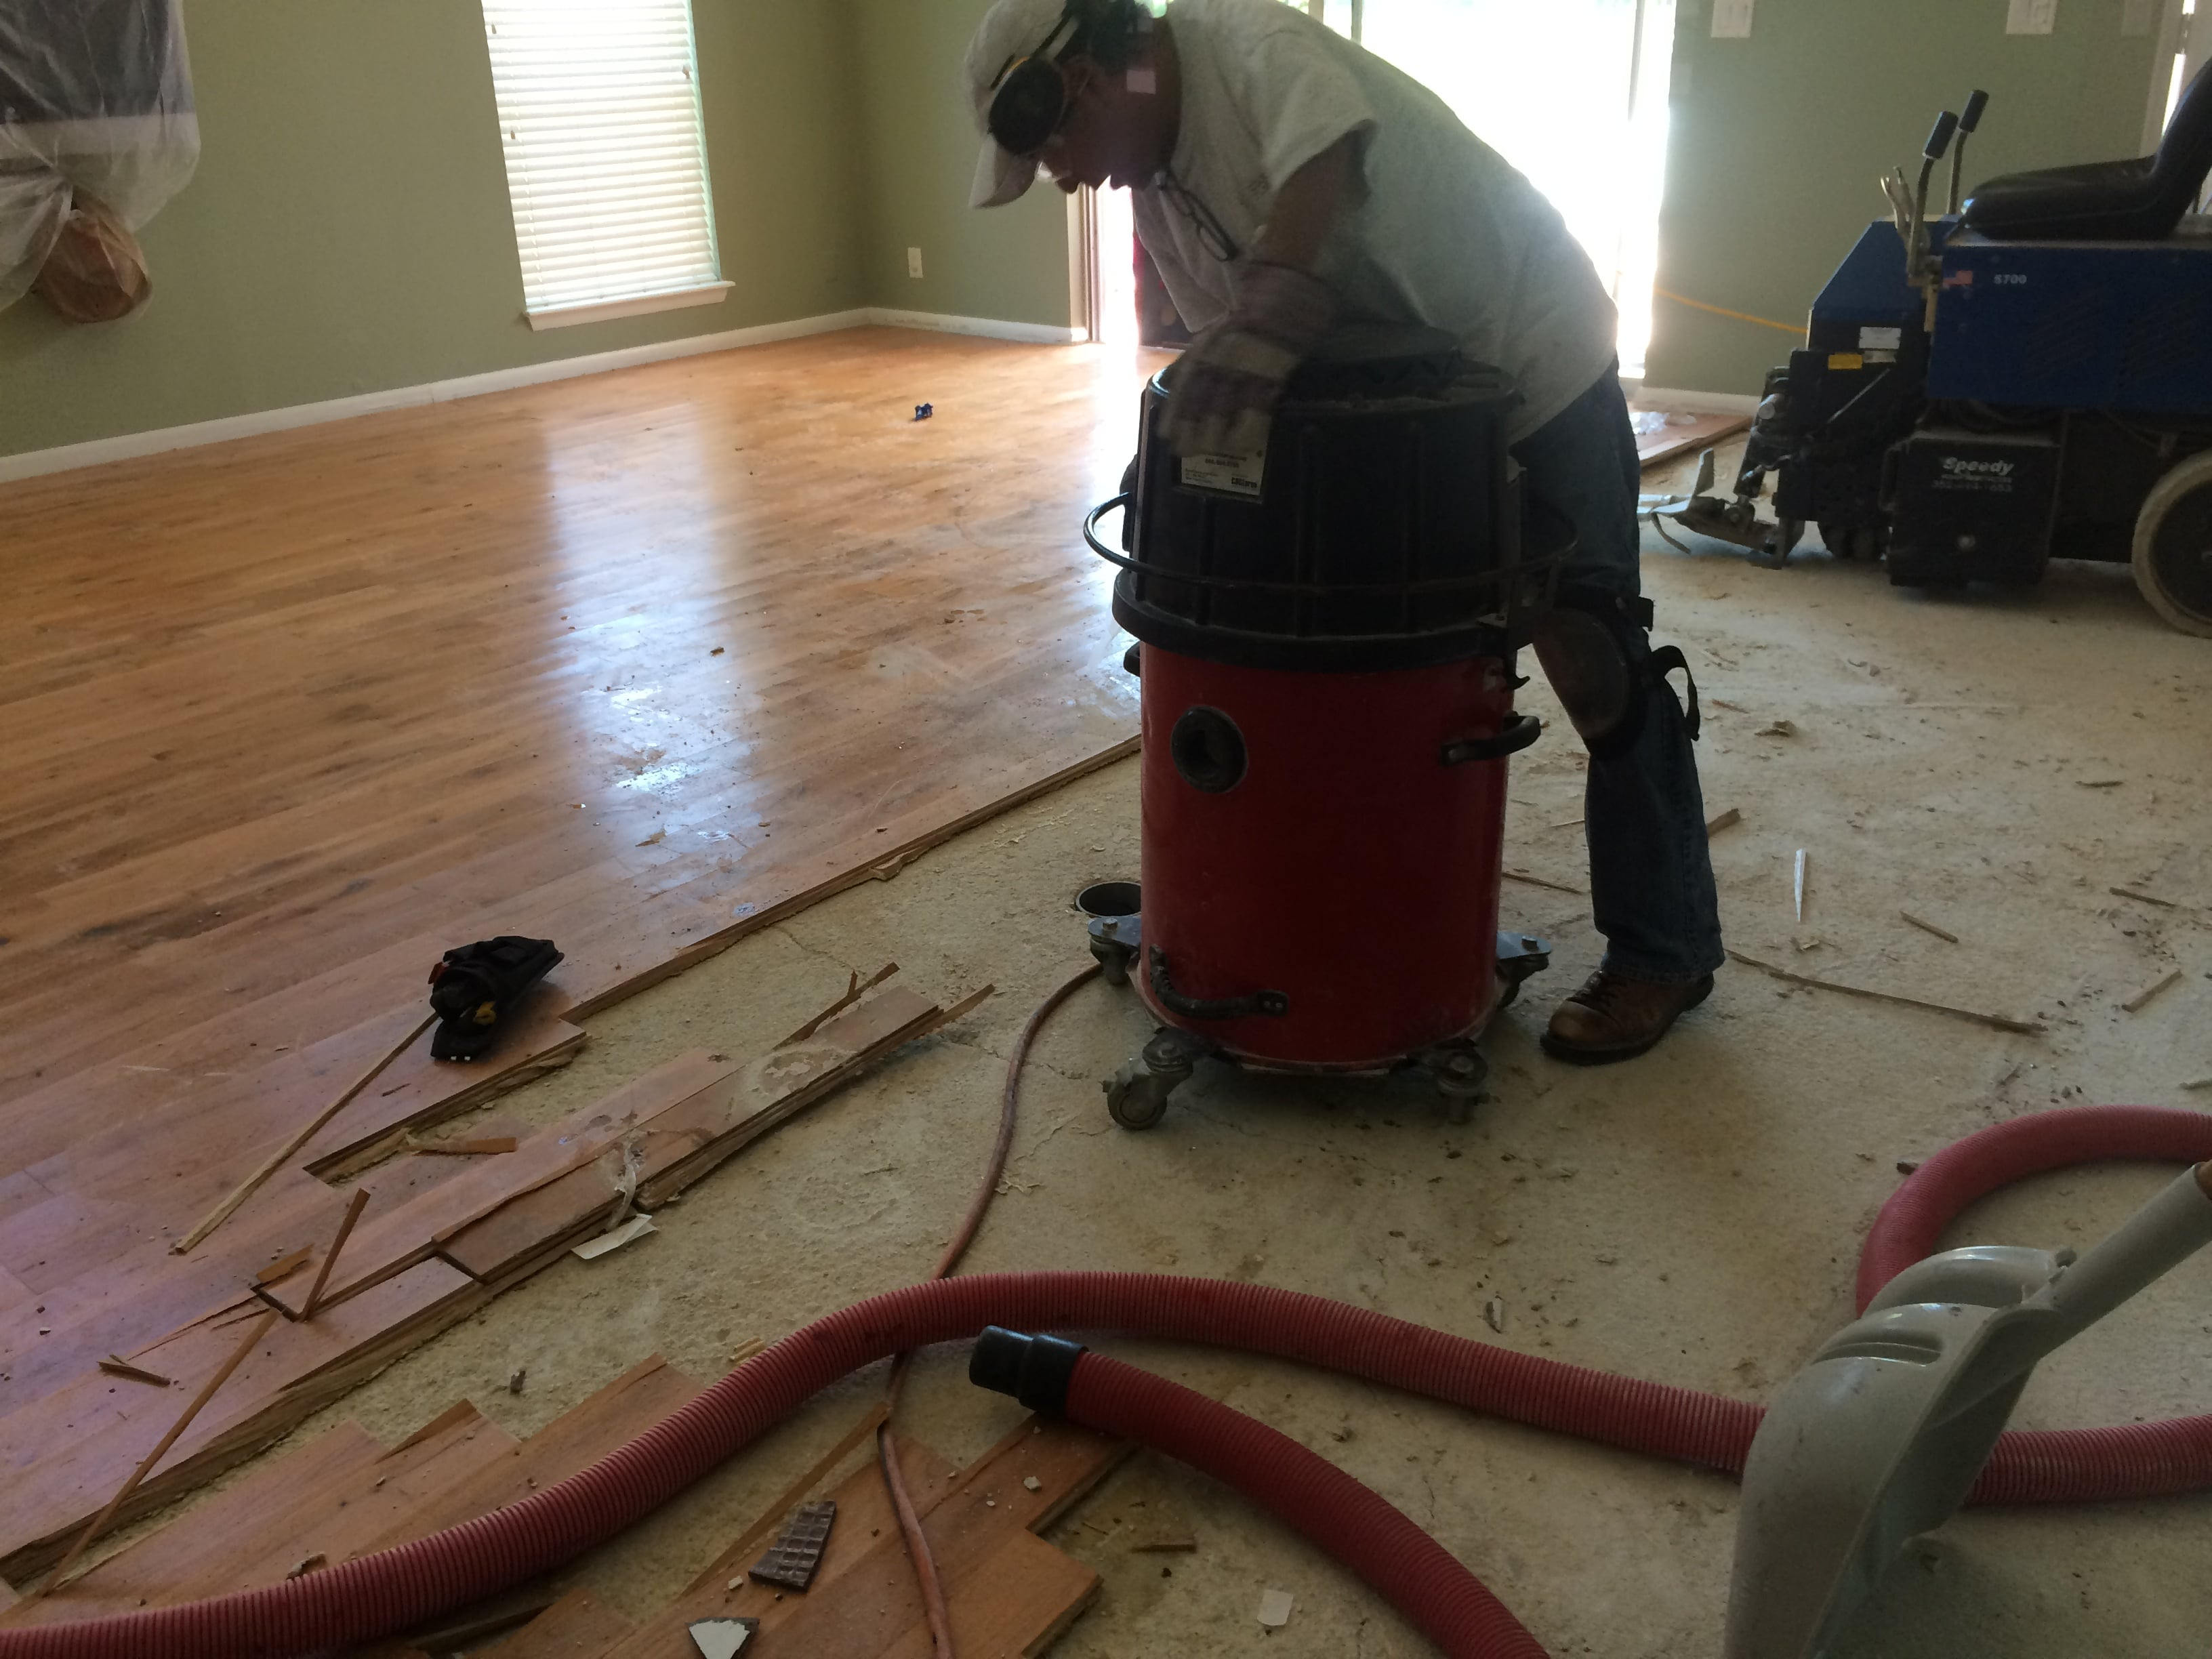 Image of wood floor removal revealing concrete subfloor underneath